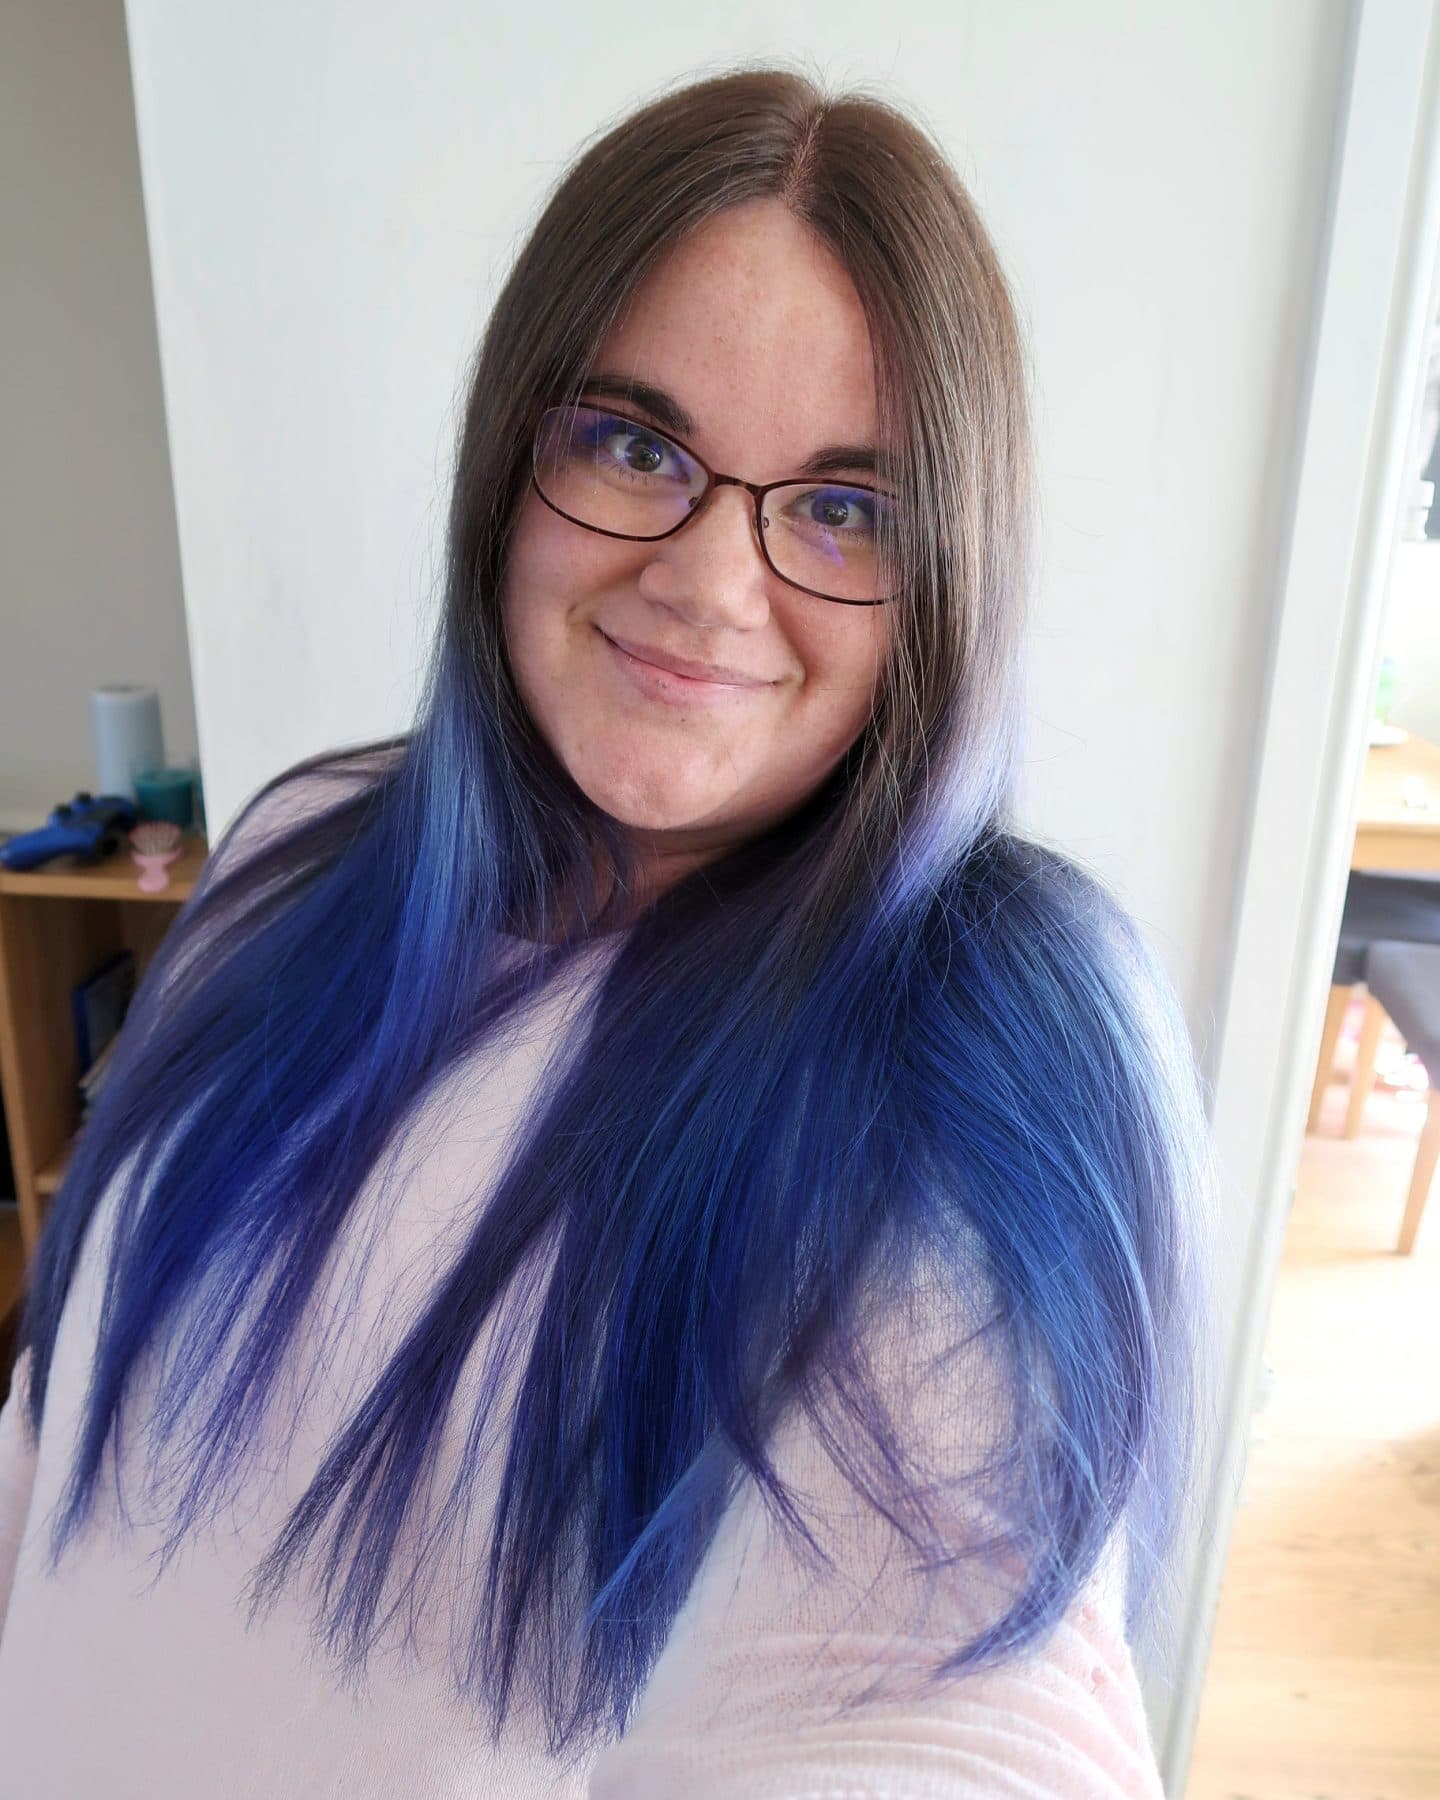 A selfie of me - with blue hair